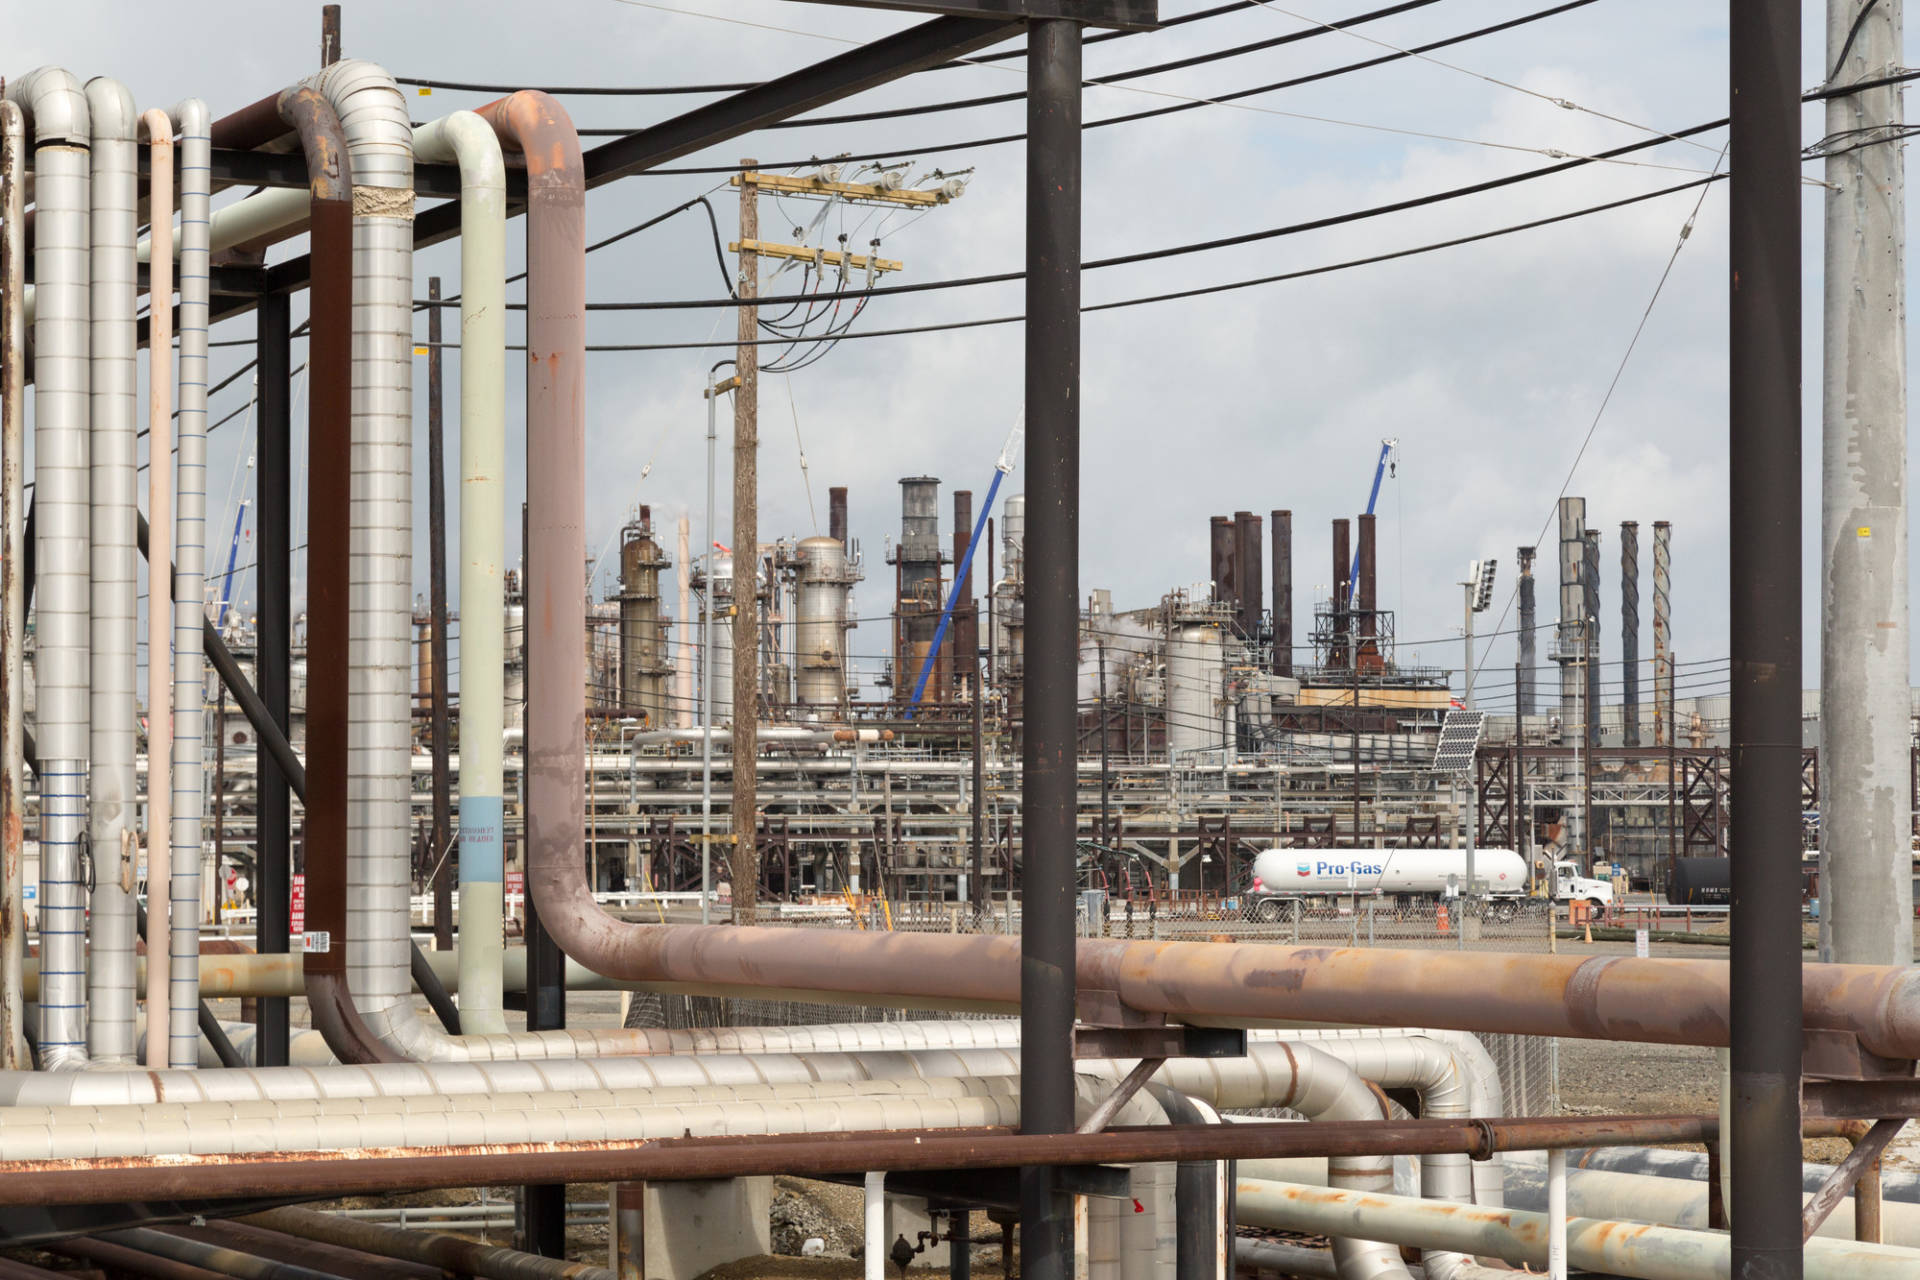 Booming Noise From Chevron Refinery Prompts Anger From Richmond's Mayor